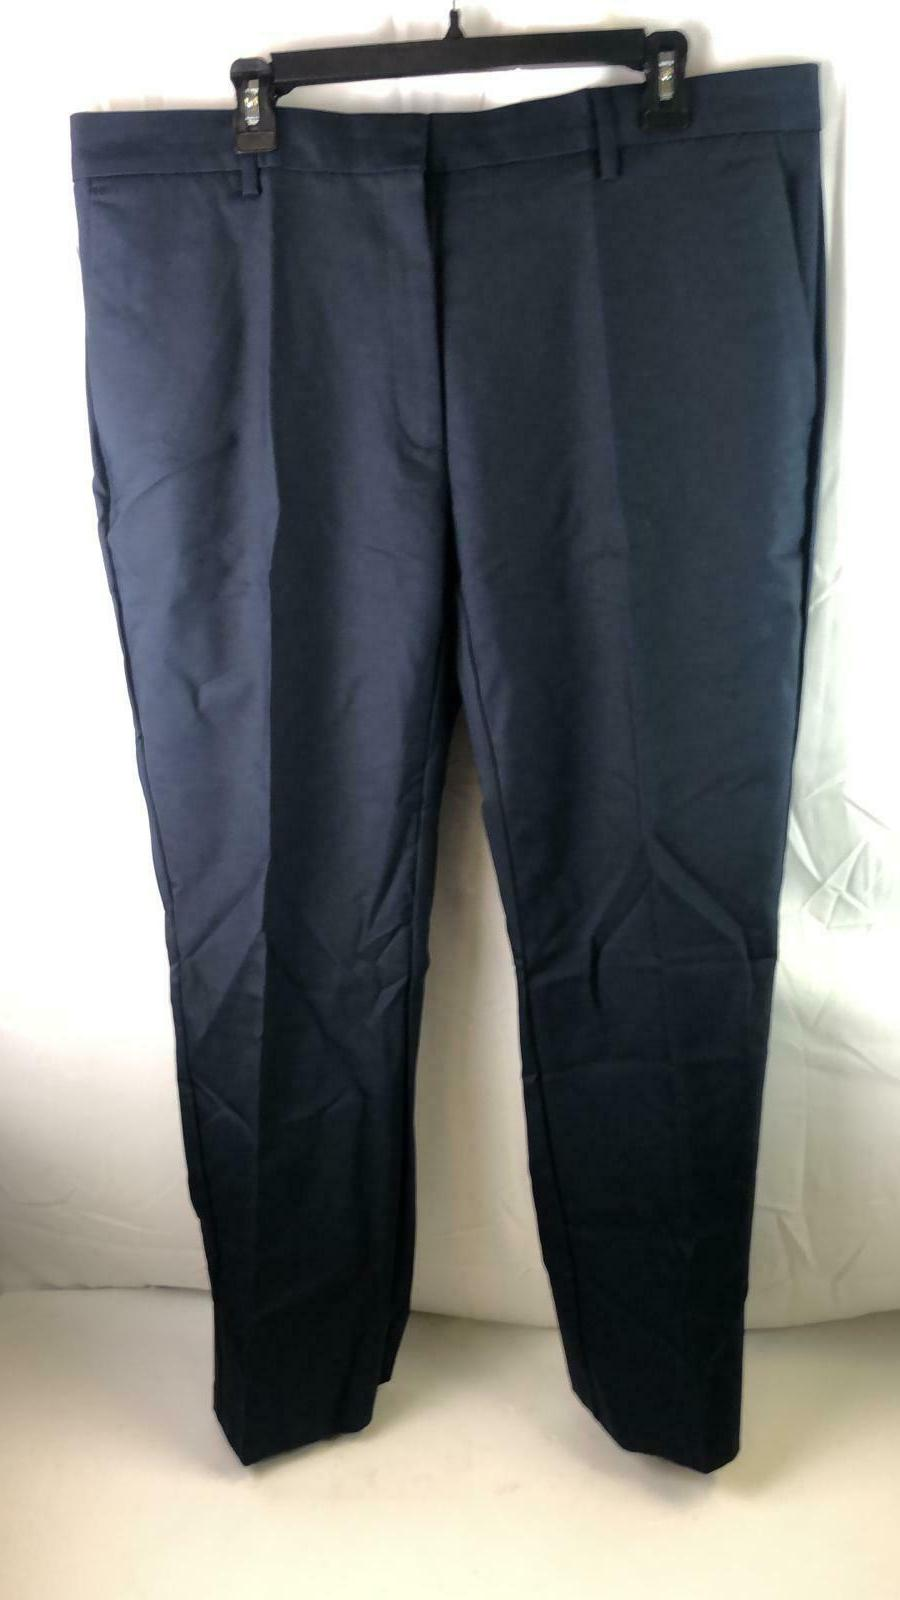 mens navy pants size 40x30